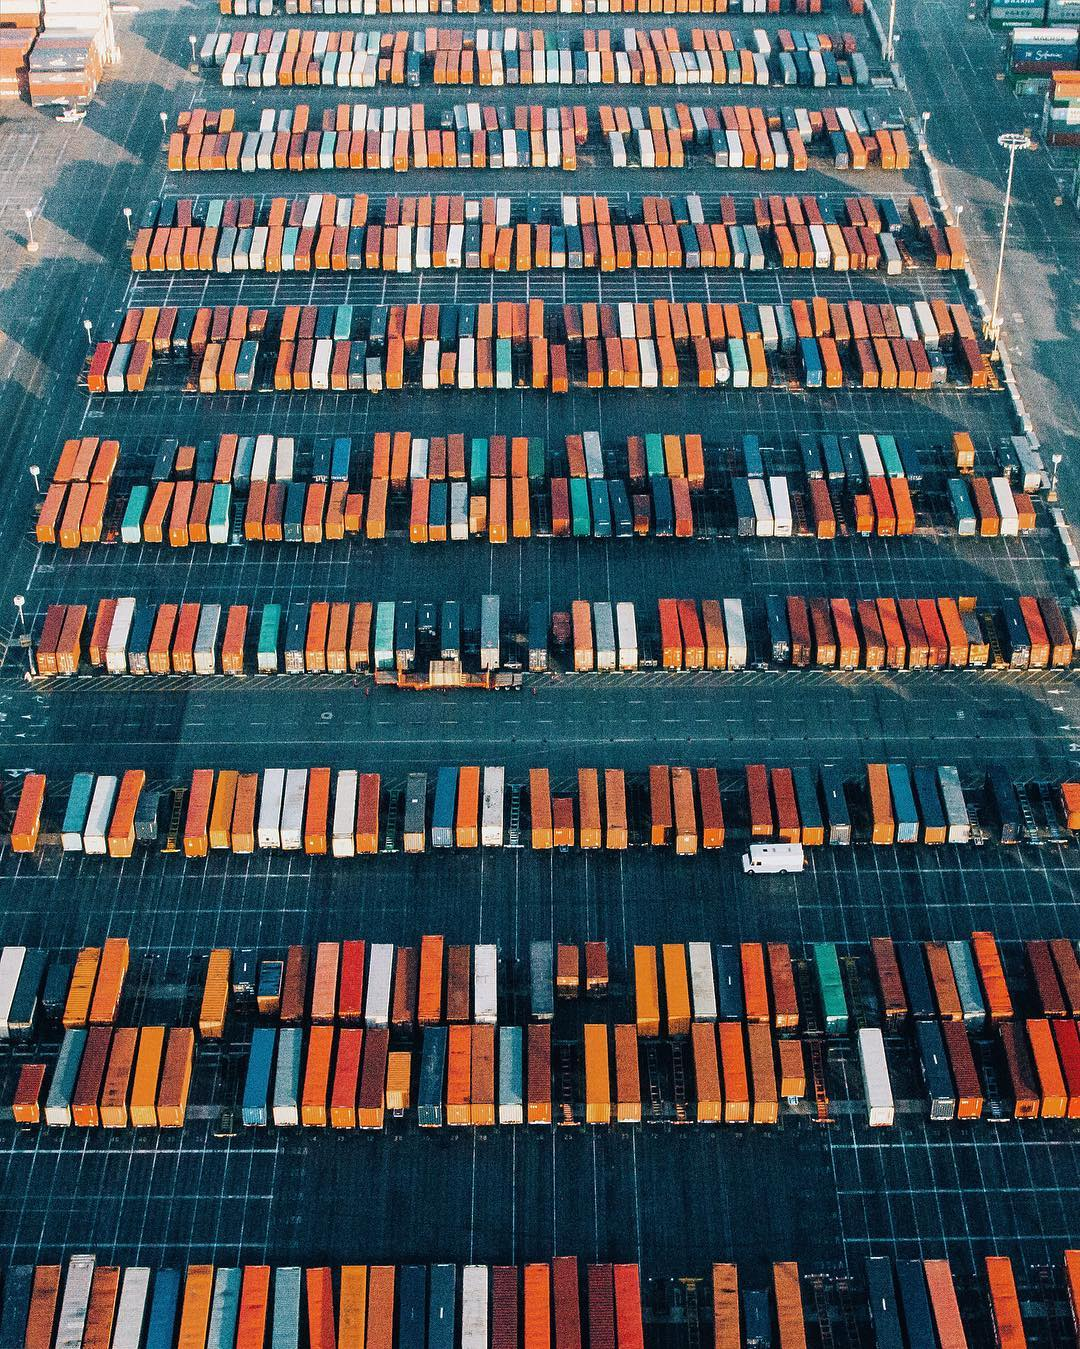 a unique view of a cargo yard - 1 of 8 picks for this week's Friday Favorites